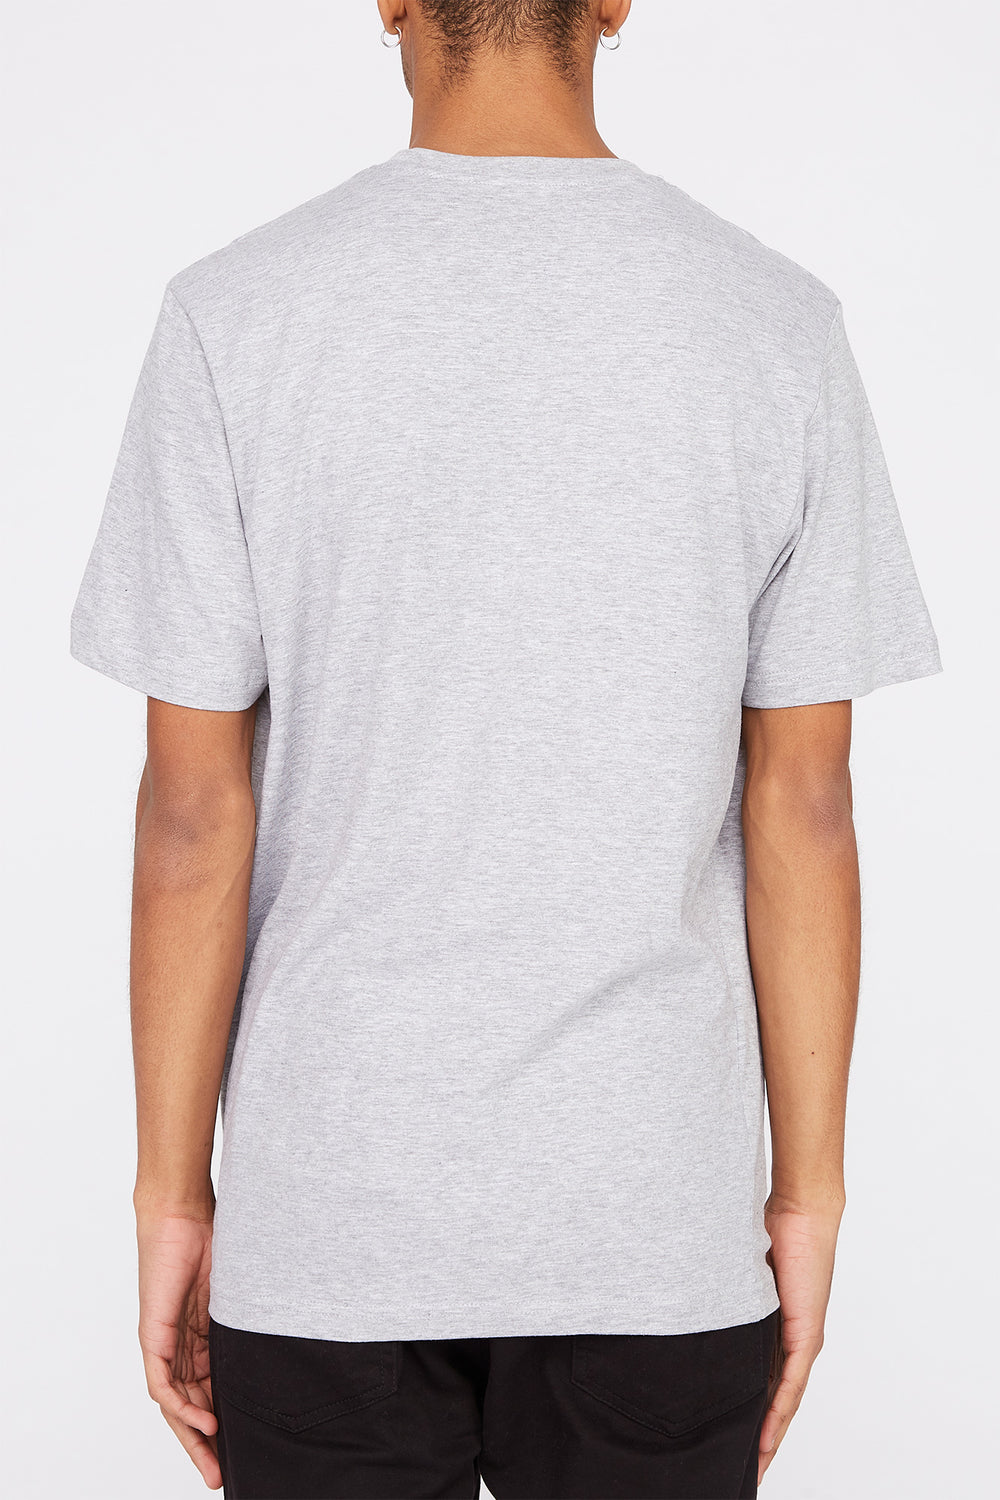 Mens Polaroid Graphic T-Shirt Heather Grey